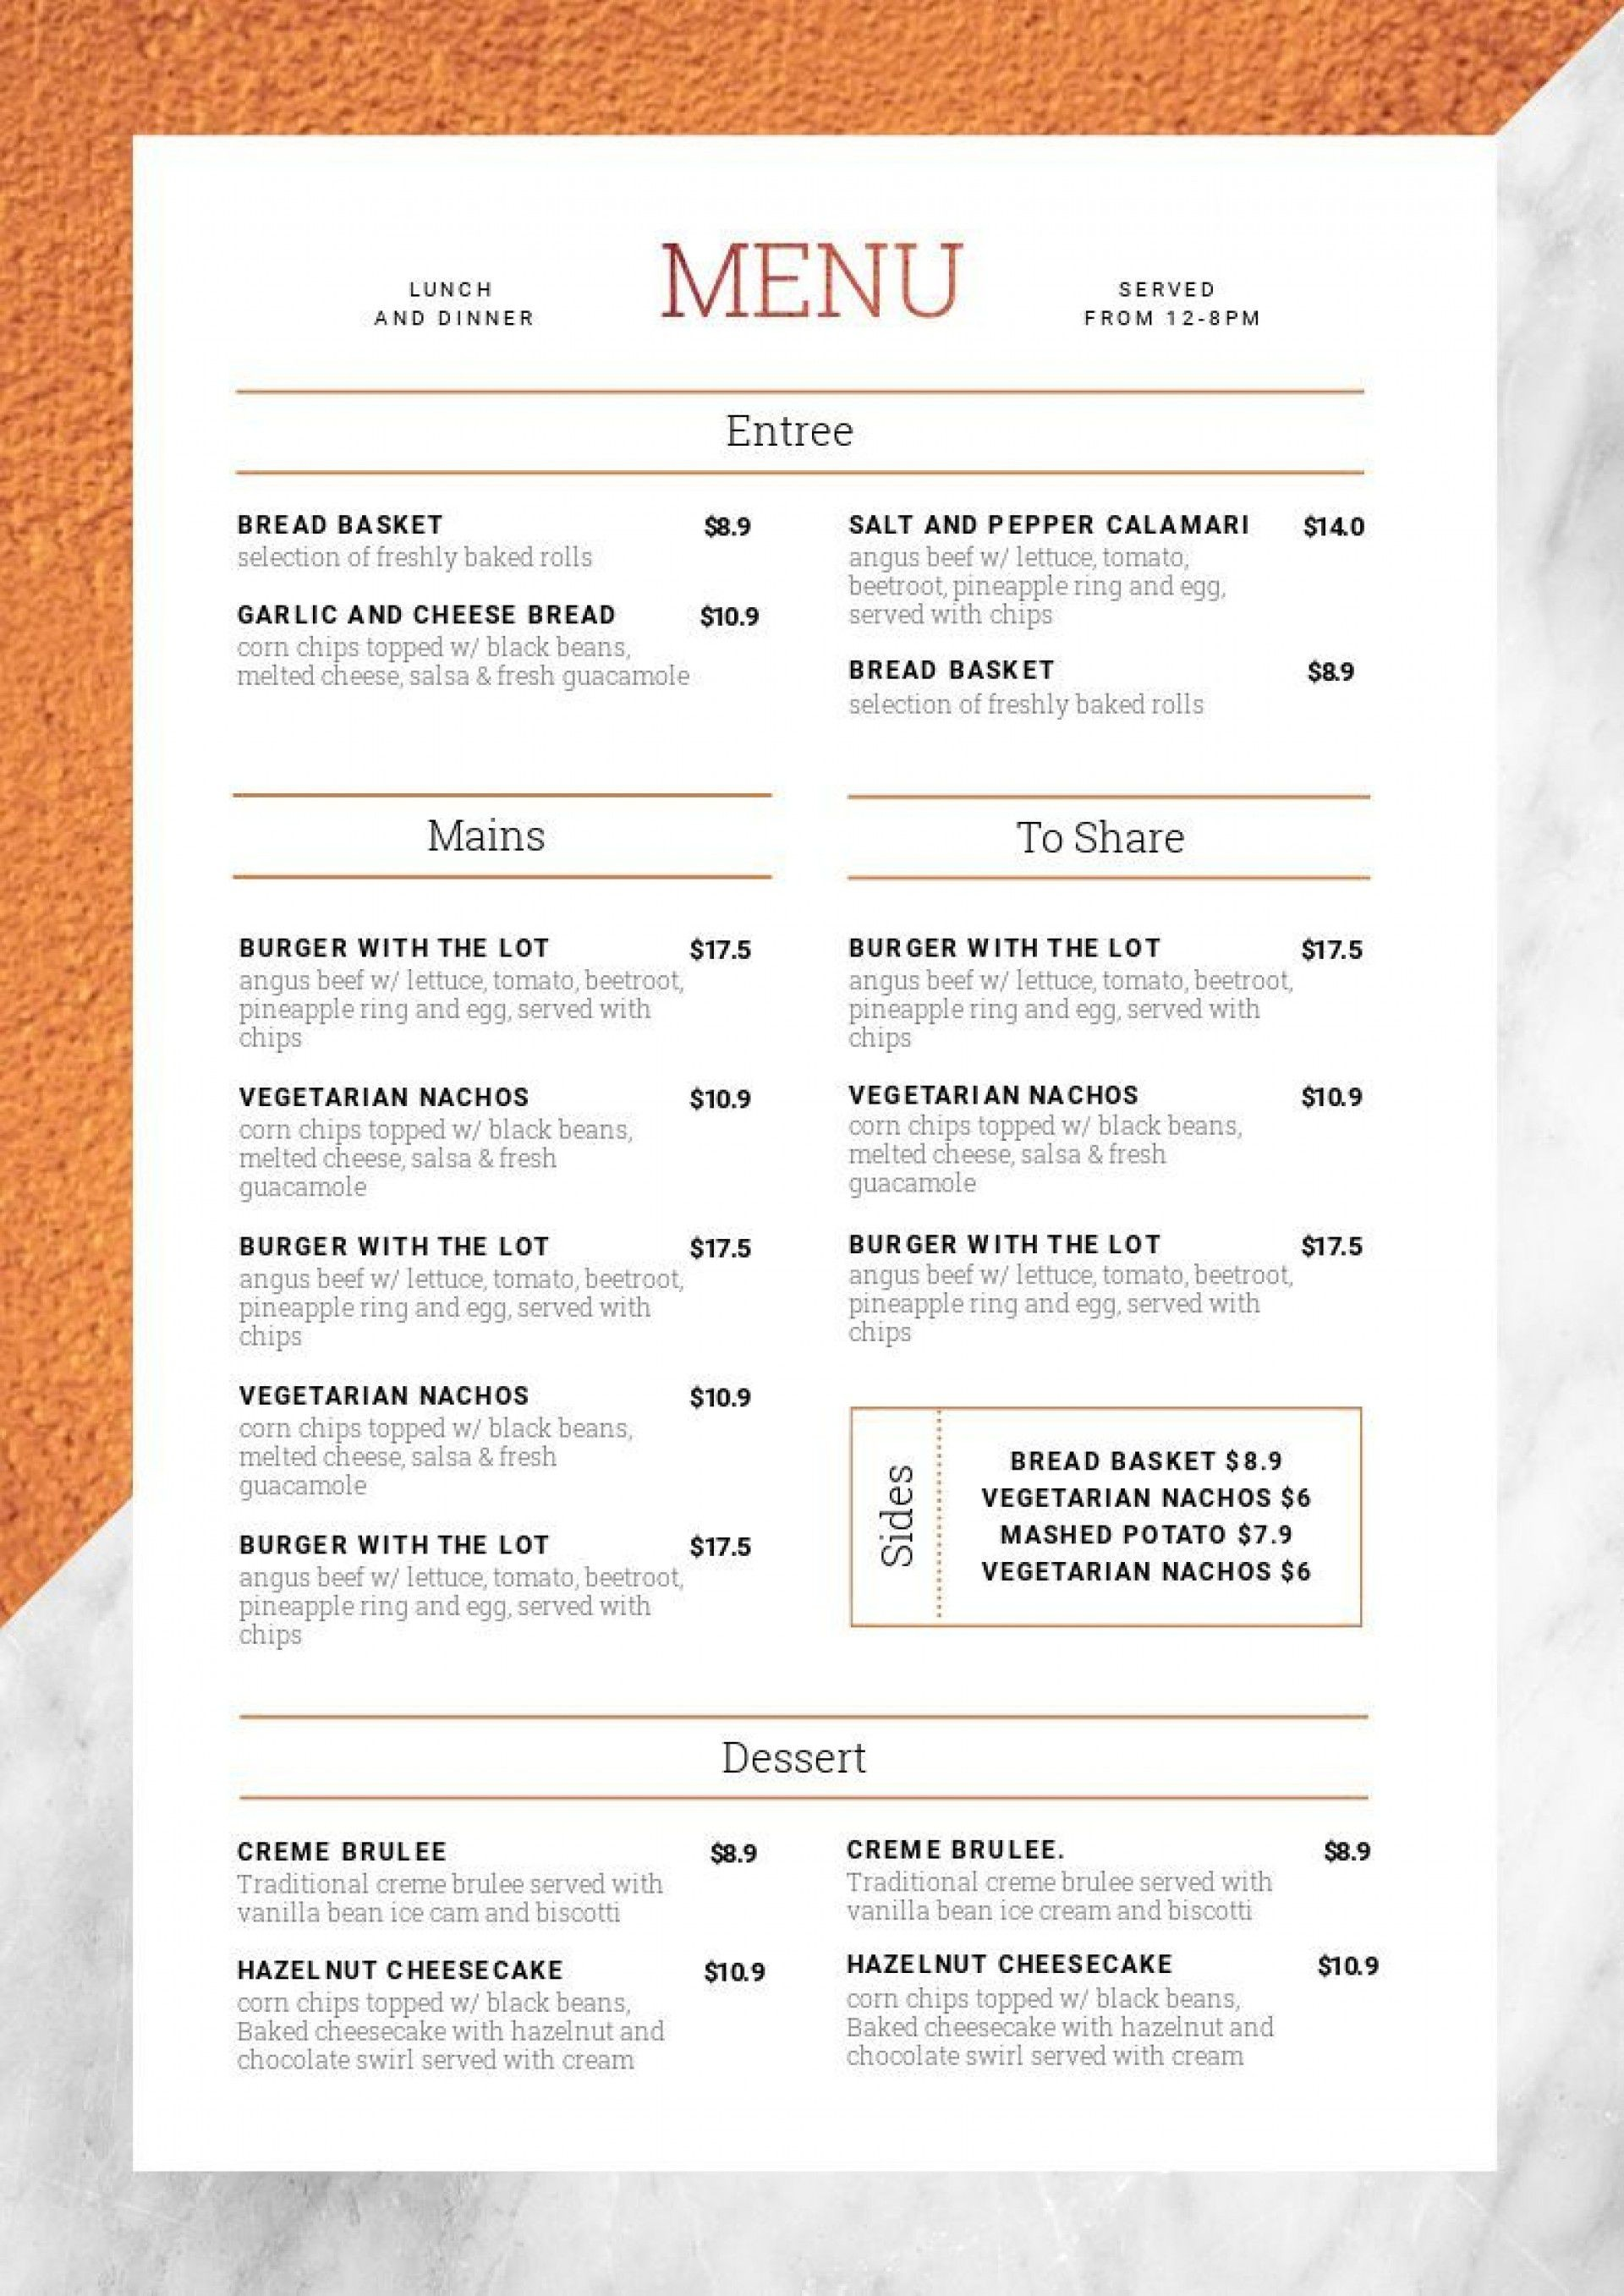 007 Fascinating Menu Template Free Download Word Concept  Dinner Party Wedding1920